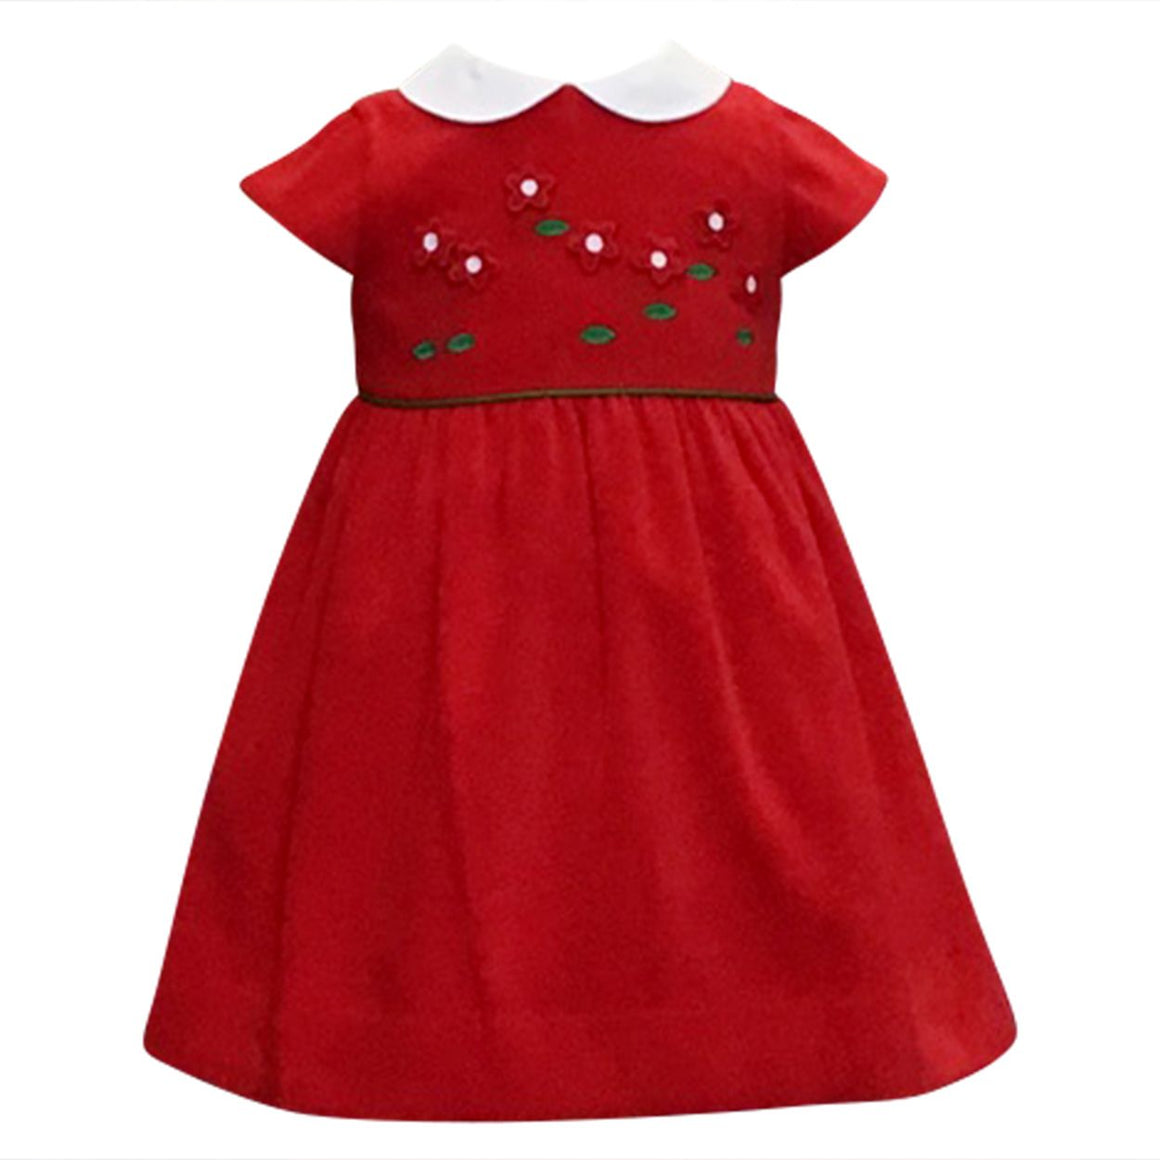 Red Velvet Dress With Flowers